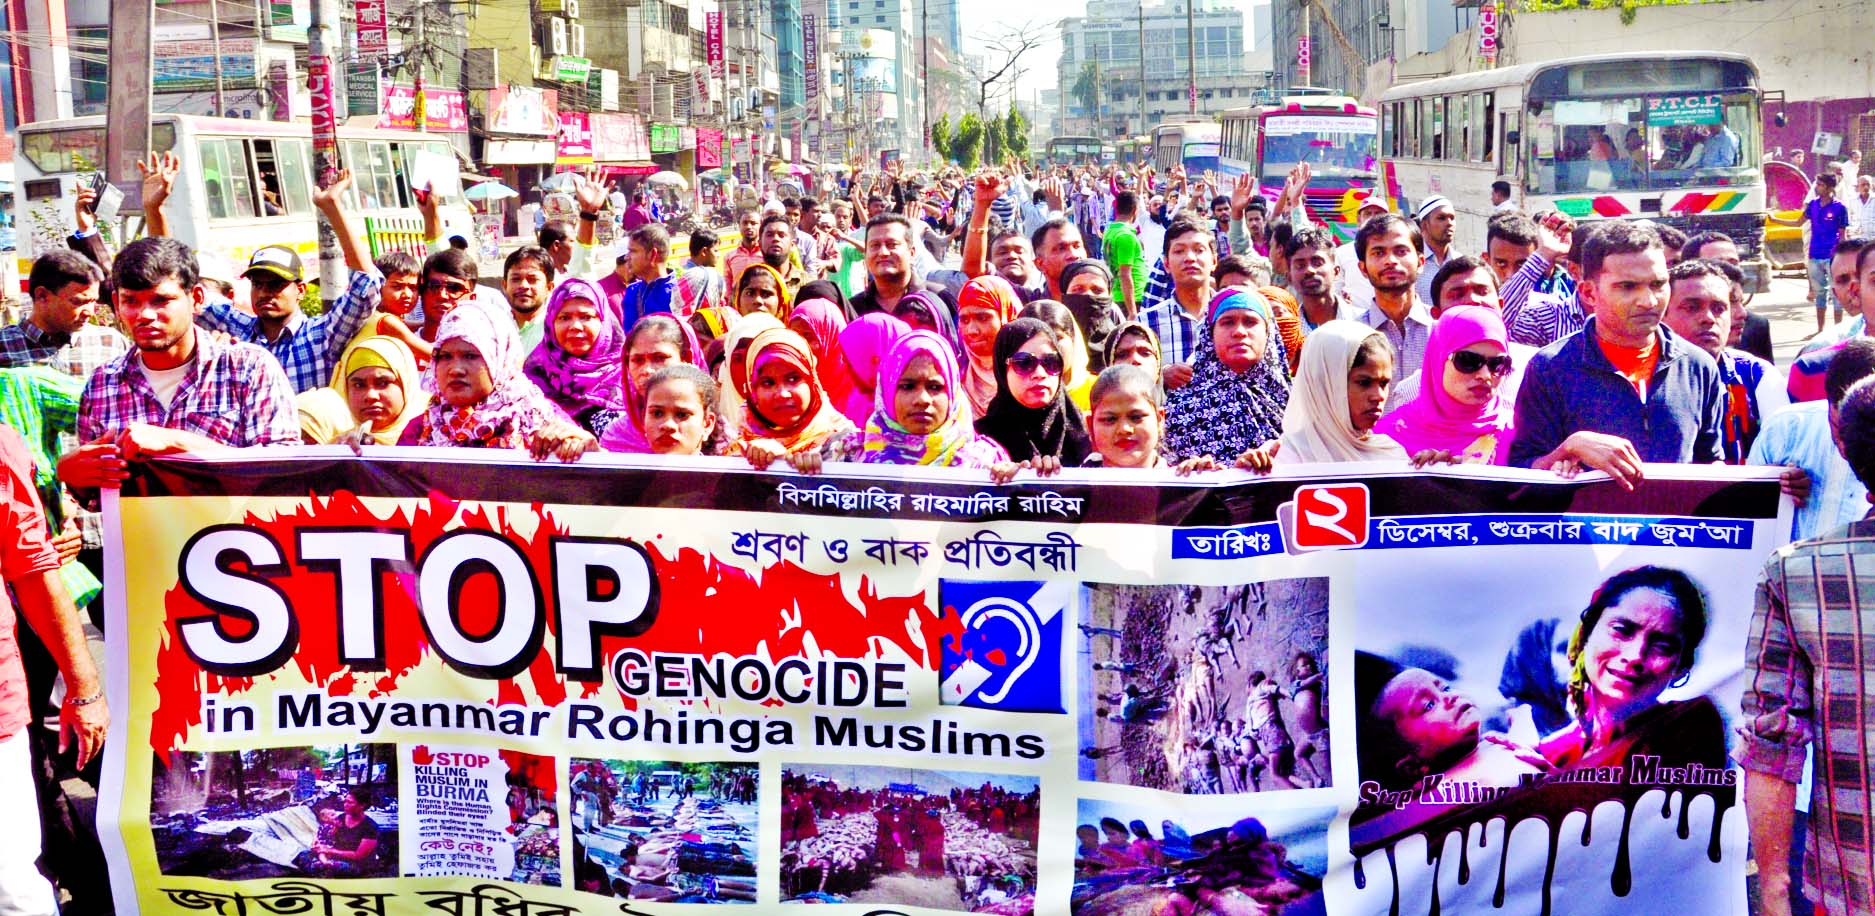 Jatiya Badhir Oikya Parishad brought out a rally in the city on Friday with a call to stop killing of Rohyngya Muslims in Myanmar.